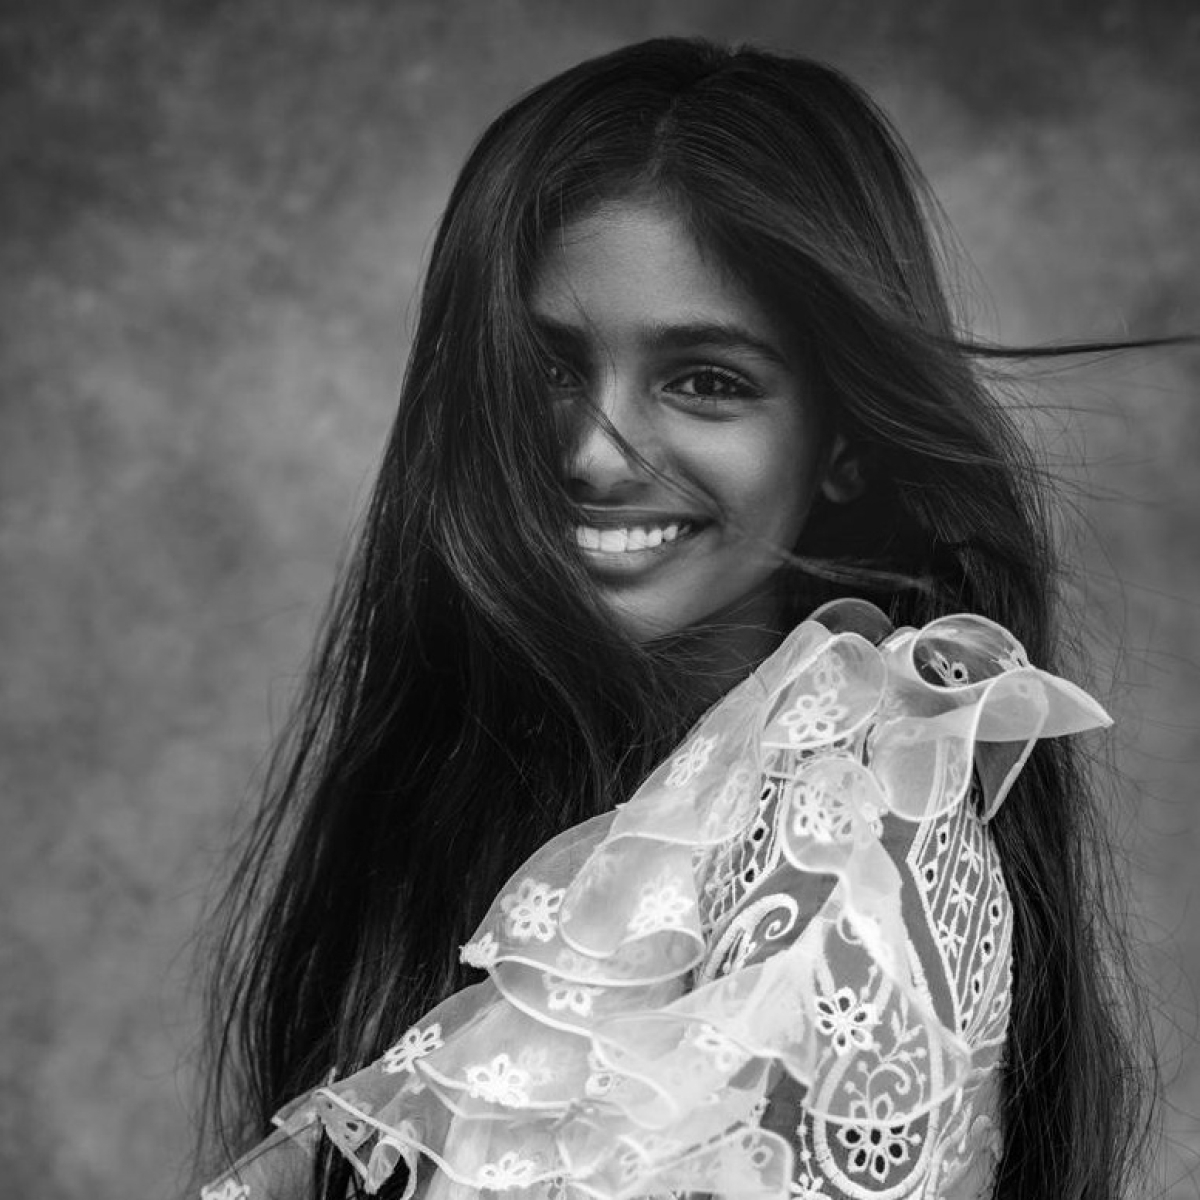 13-year-old Maleesha Kharwa's journey from slums of Mumbai to the cover of a fashion magazine is proof that dreams can come true